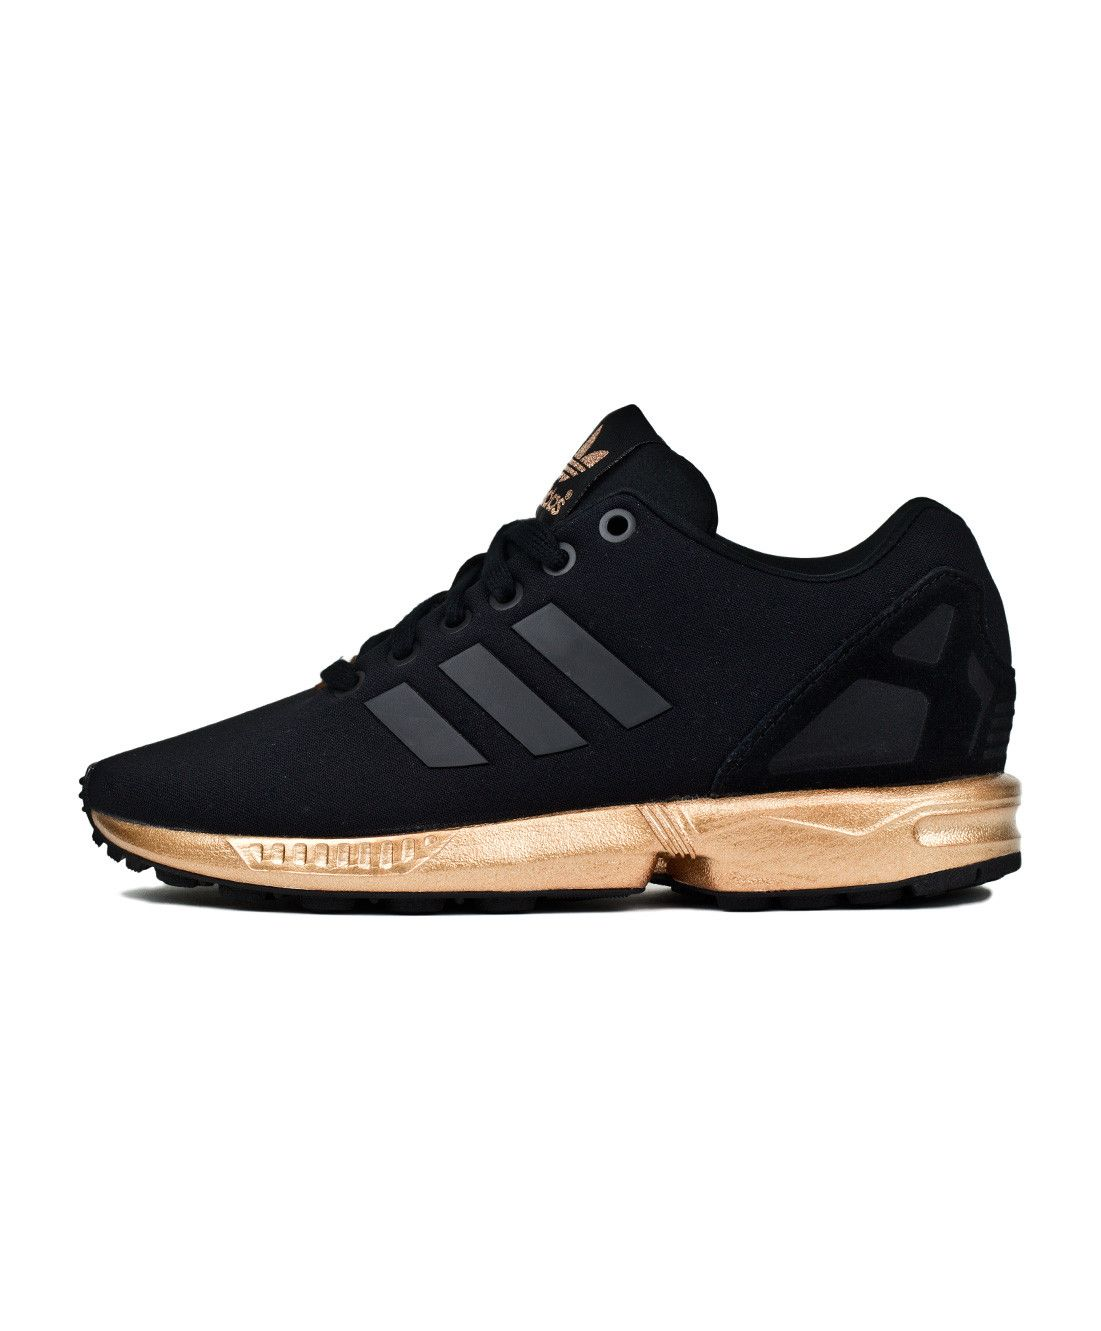 zapatillas adidas zx gold